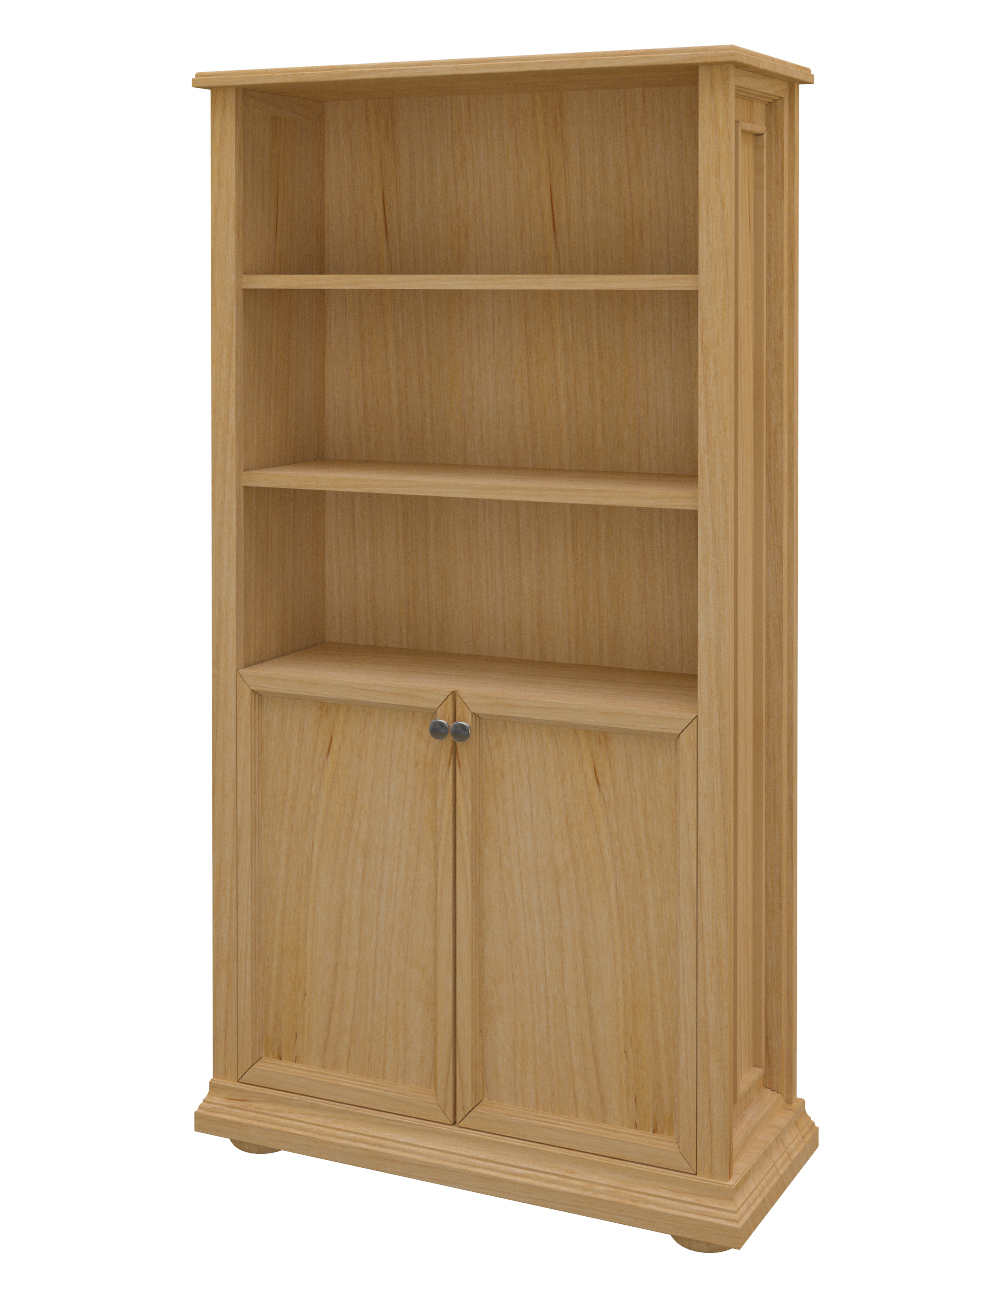 Edinburgh Wooden Door Bookshelves Wooden Door Bookshelf